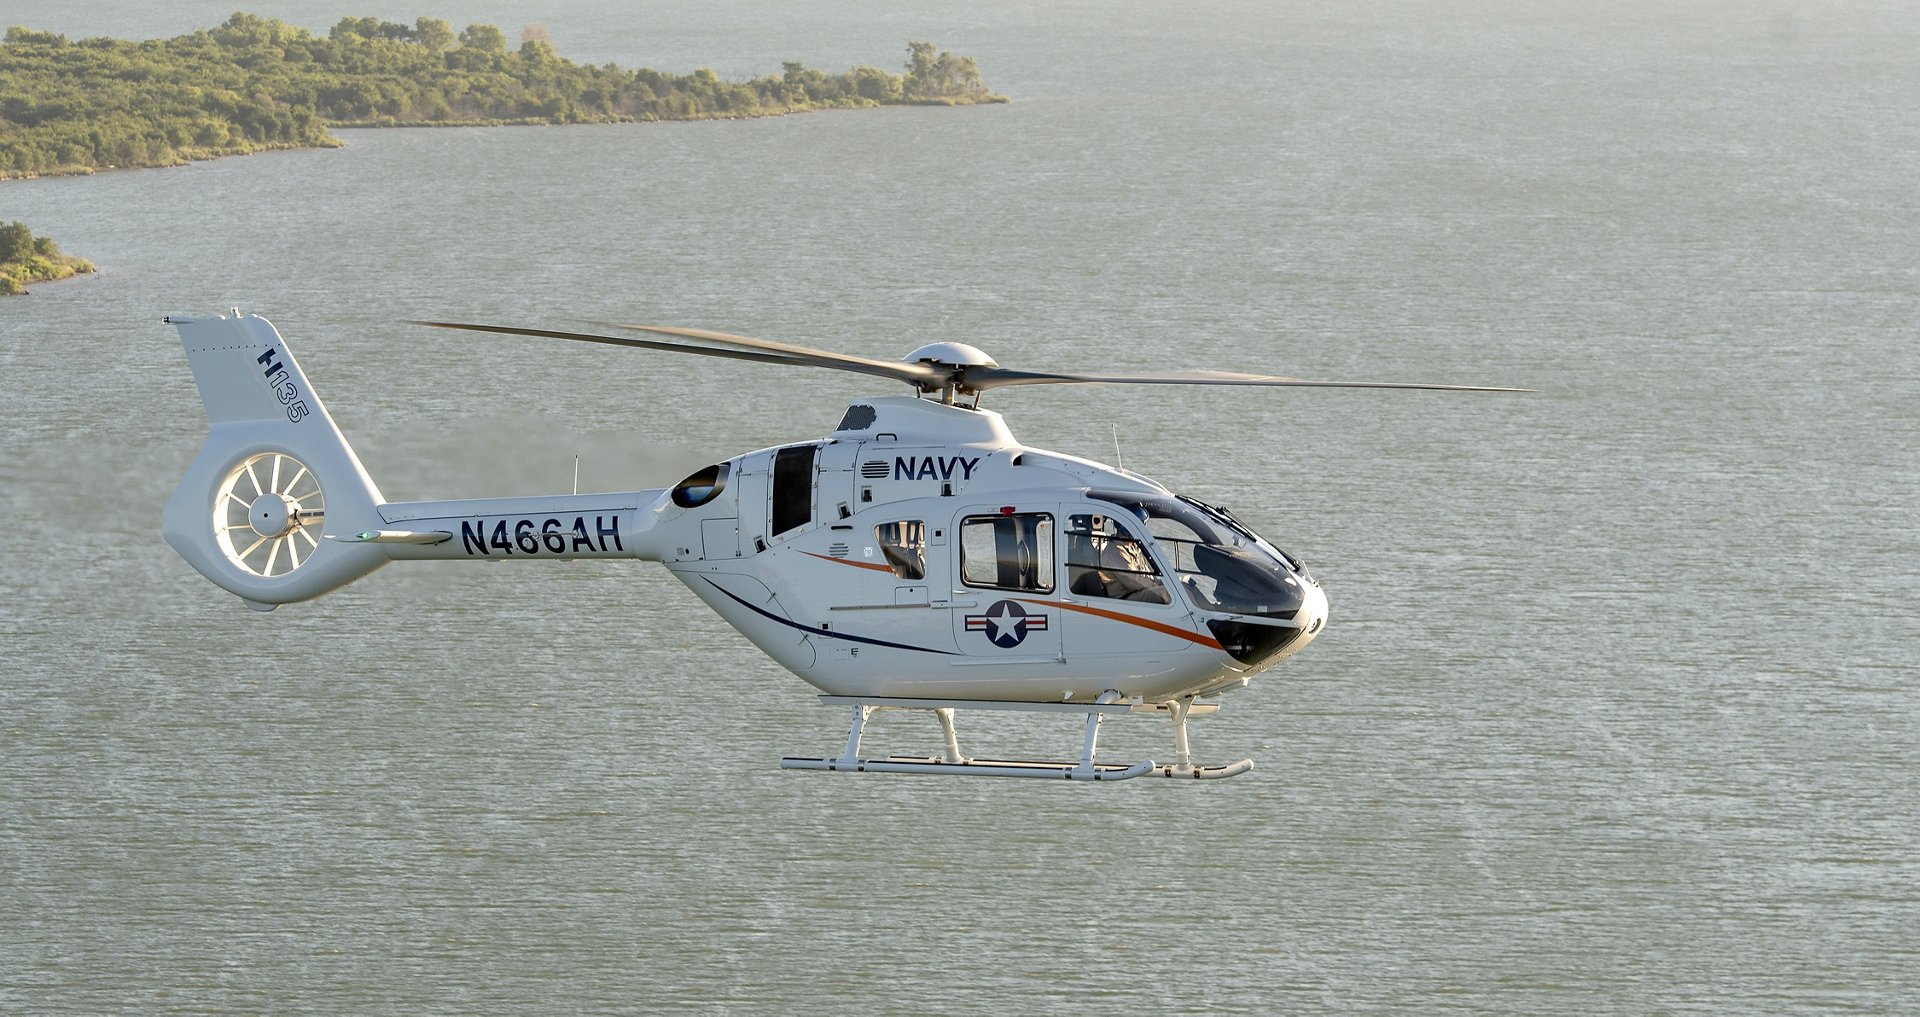 Equipped with the most advanced technologies available like 4-axis autopilot and One Engine Inoperable (OEI) training mode, the FAA Instrument Flight Rules (IFR) Certified H135 provides future aviators with an ideal platform for training missions, a critical discriminator for the Navy as it trains its pilots over water and in reduced visibility.